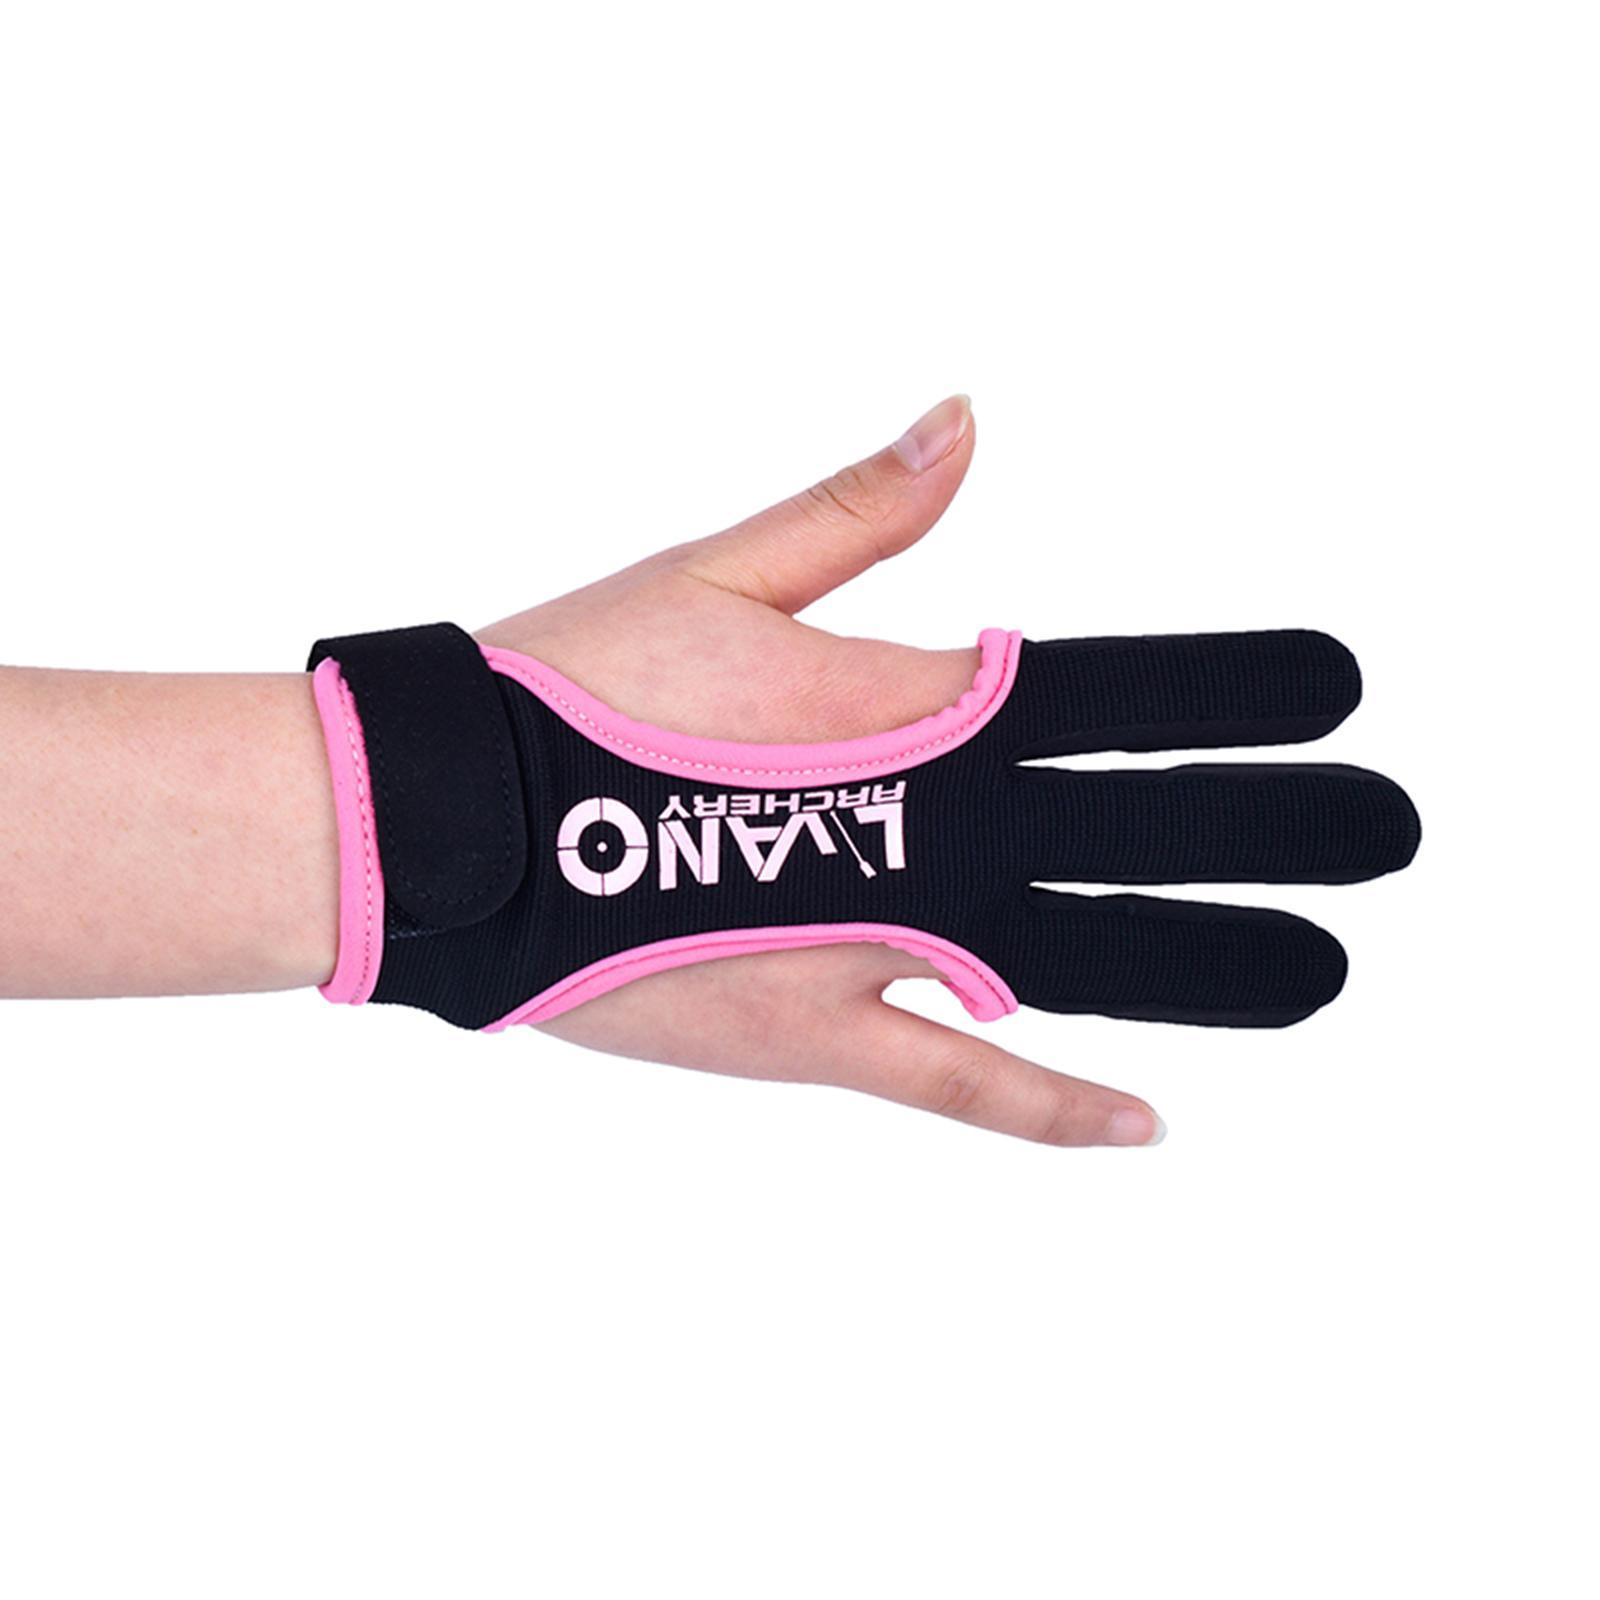 thumbnail 35 - Archery Glove for Recurve & Compound Bow 3 Finger Guard for Women Men Youth